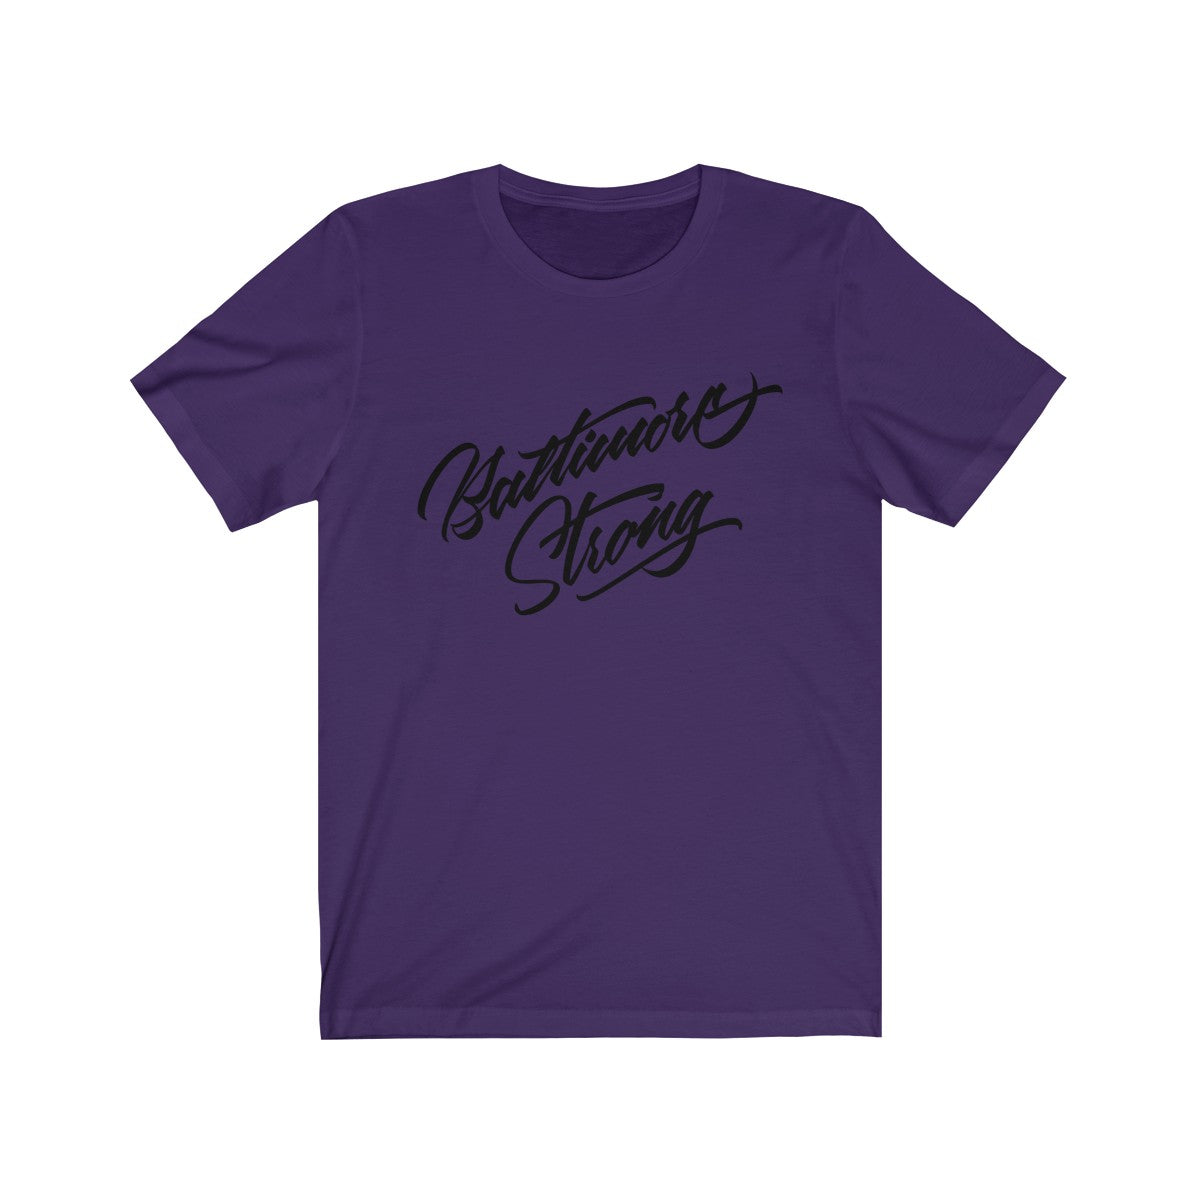 Baltimore Strong Short Sleeve Tee-Light